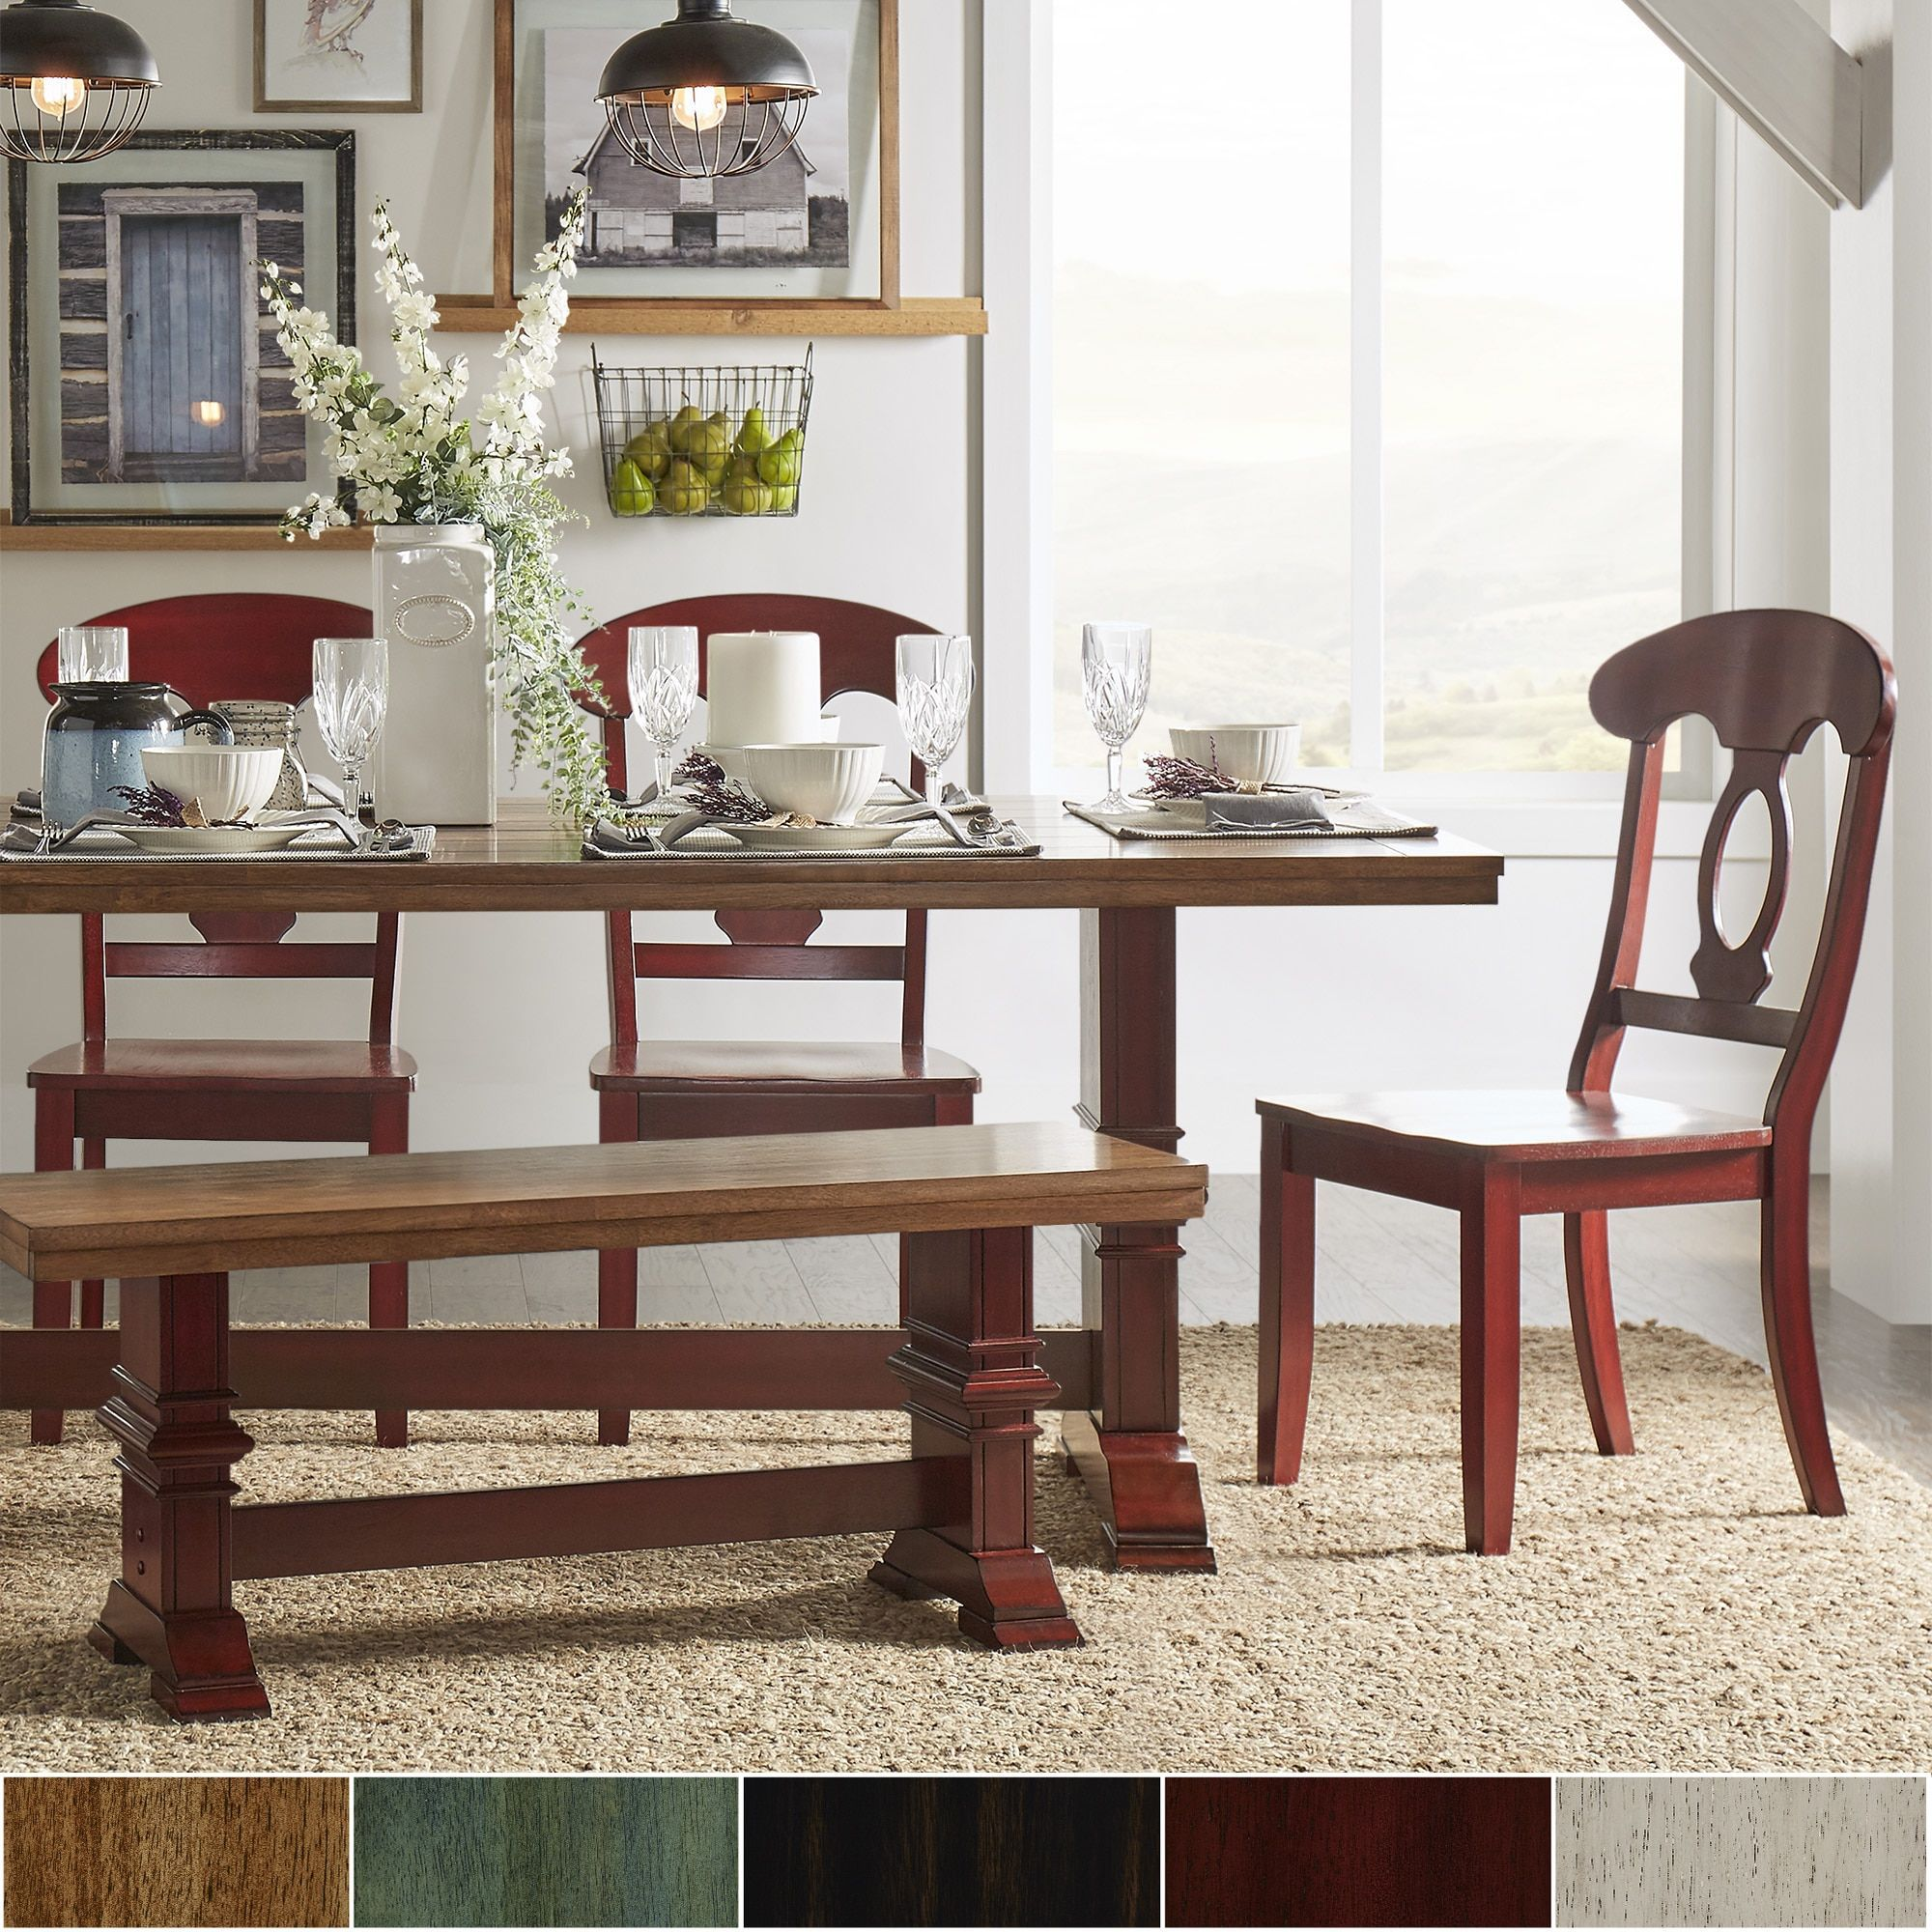 Eleanor oak farmhouse trestle base dining set napoleon back by inspire q classic set berry red chairs natural size sets